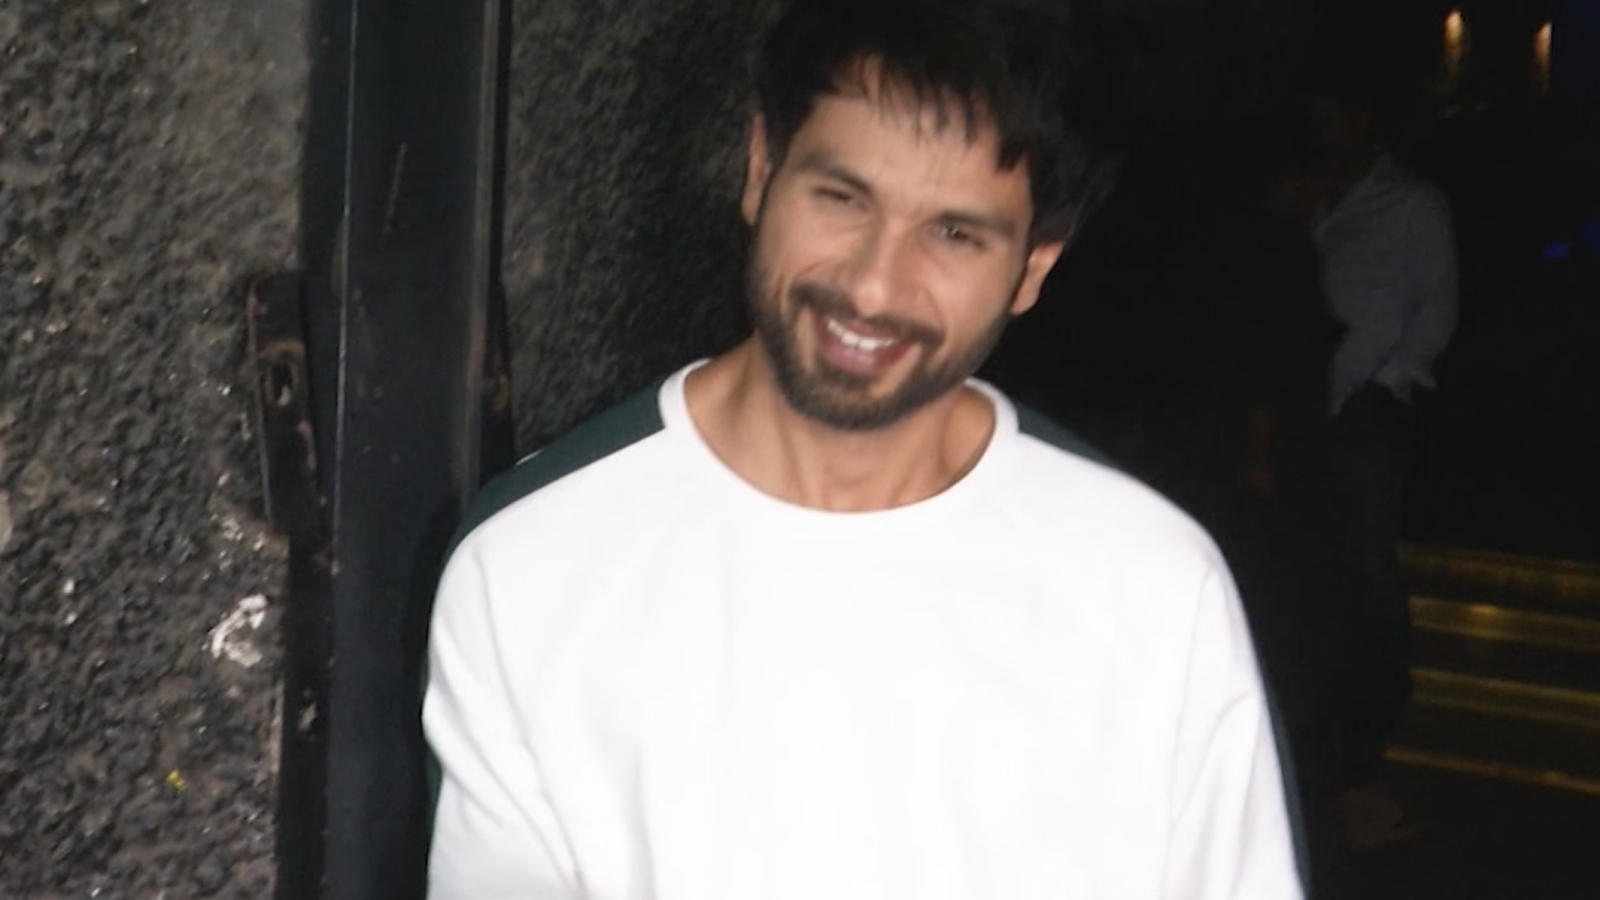 Shahid Kapoor borrows clothes from college students for his role in 'Kabir Singh'